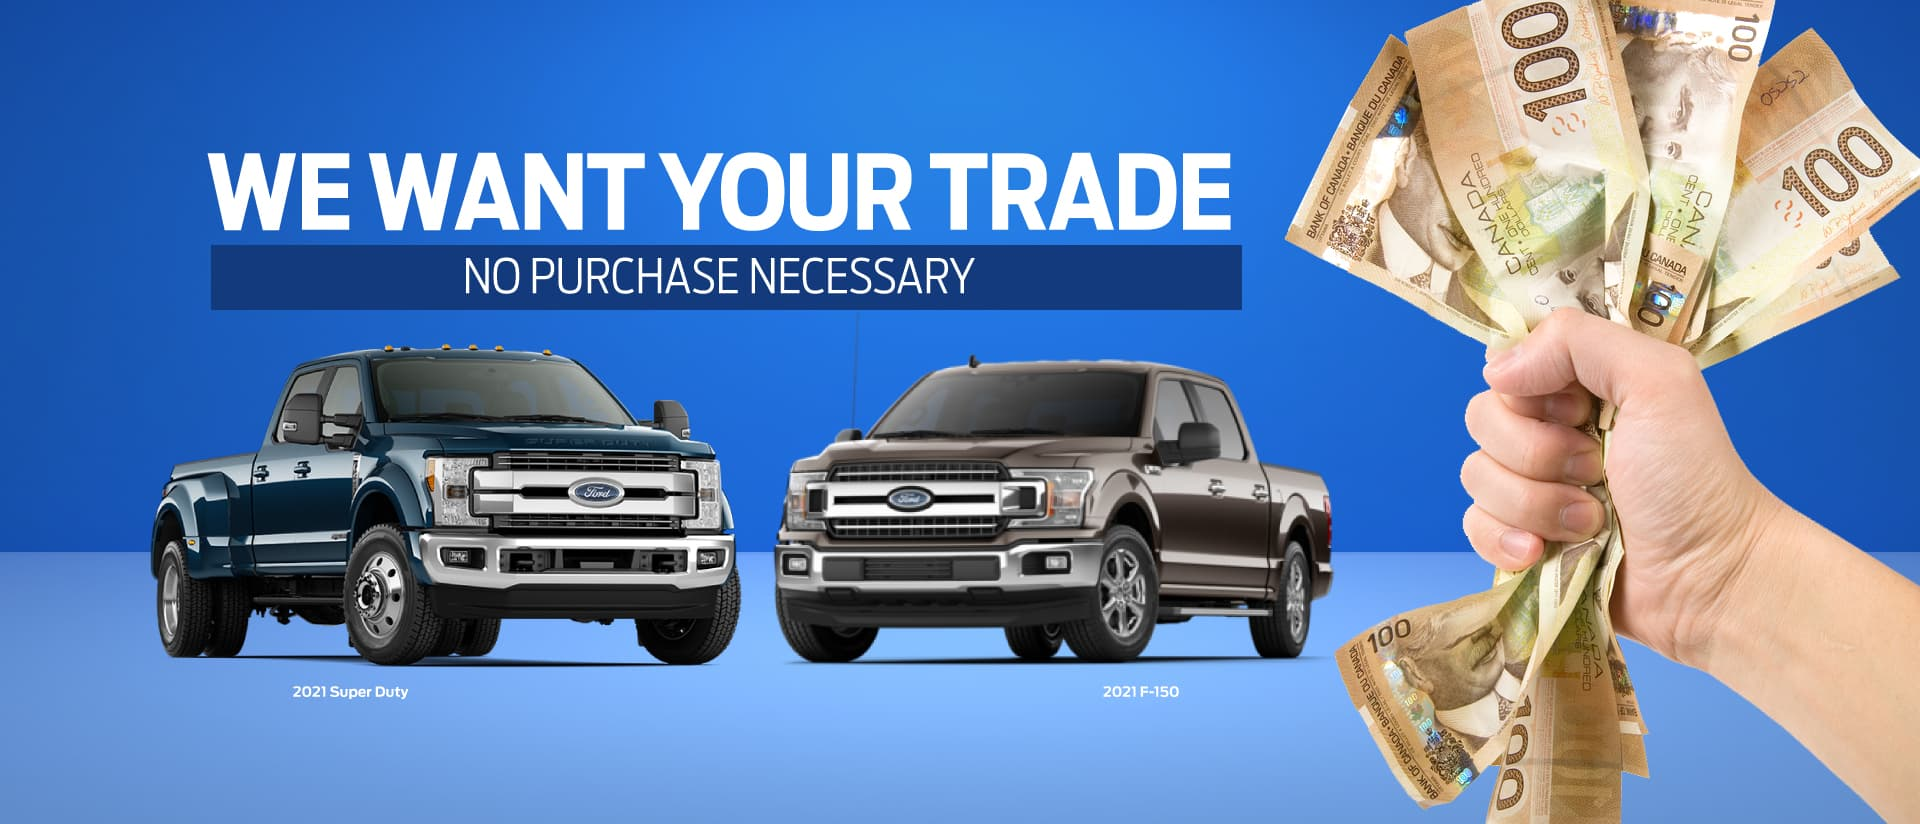 1292570861 Jf Trade In Carousel Banner 01 (1) (1)